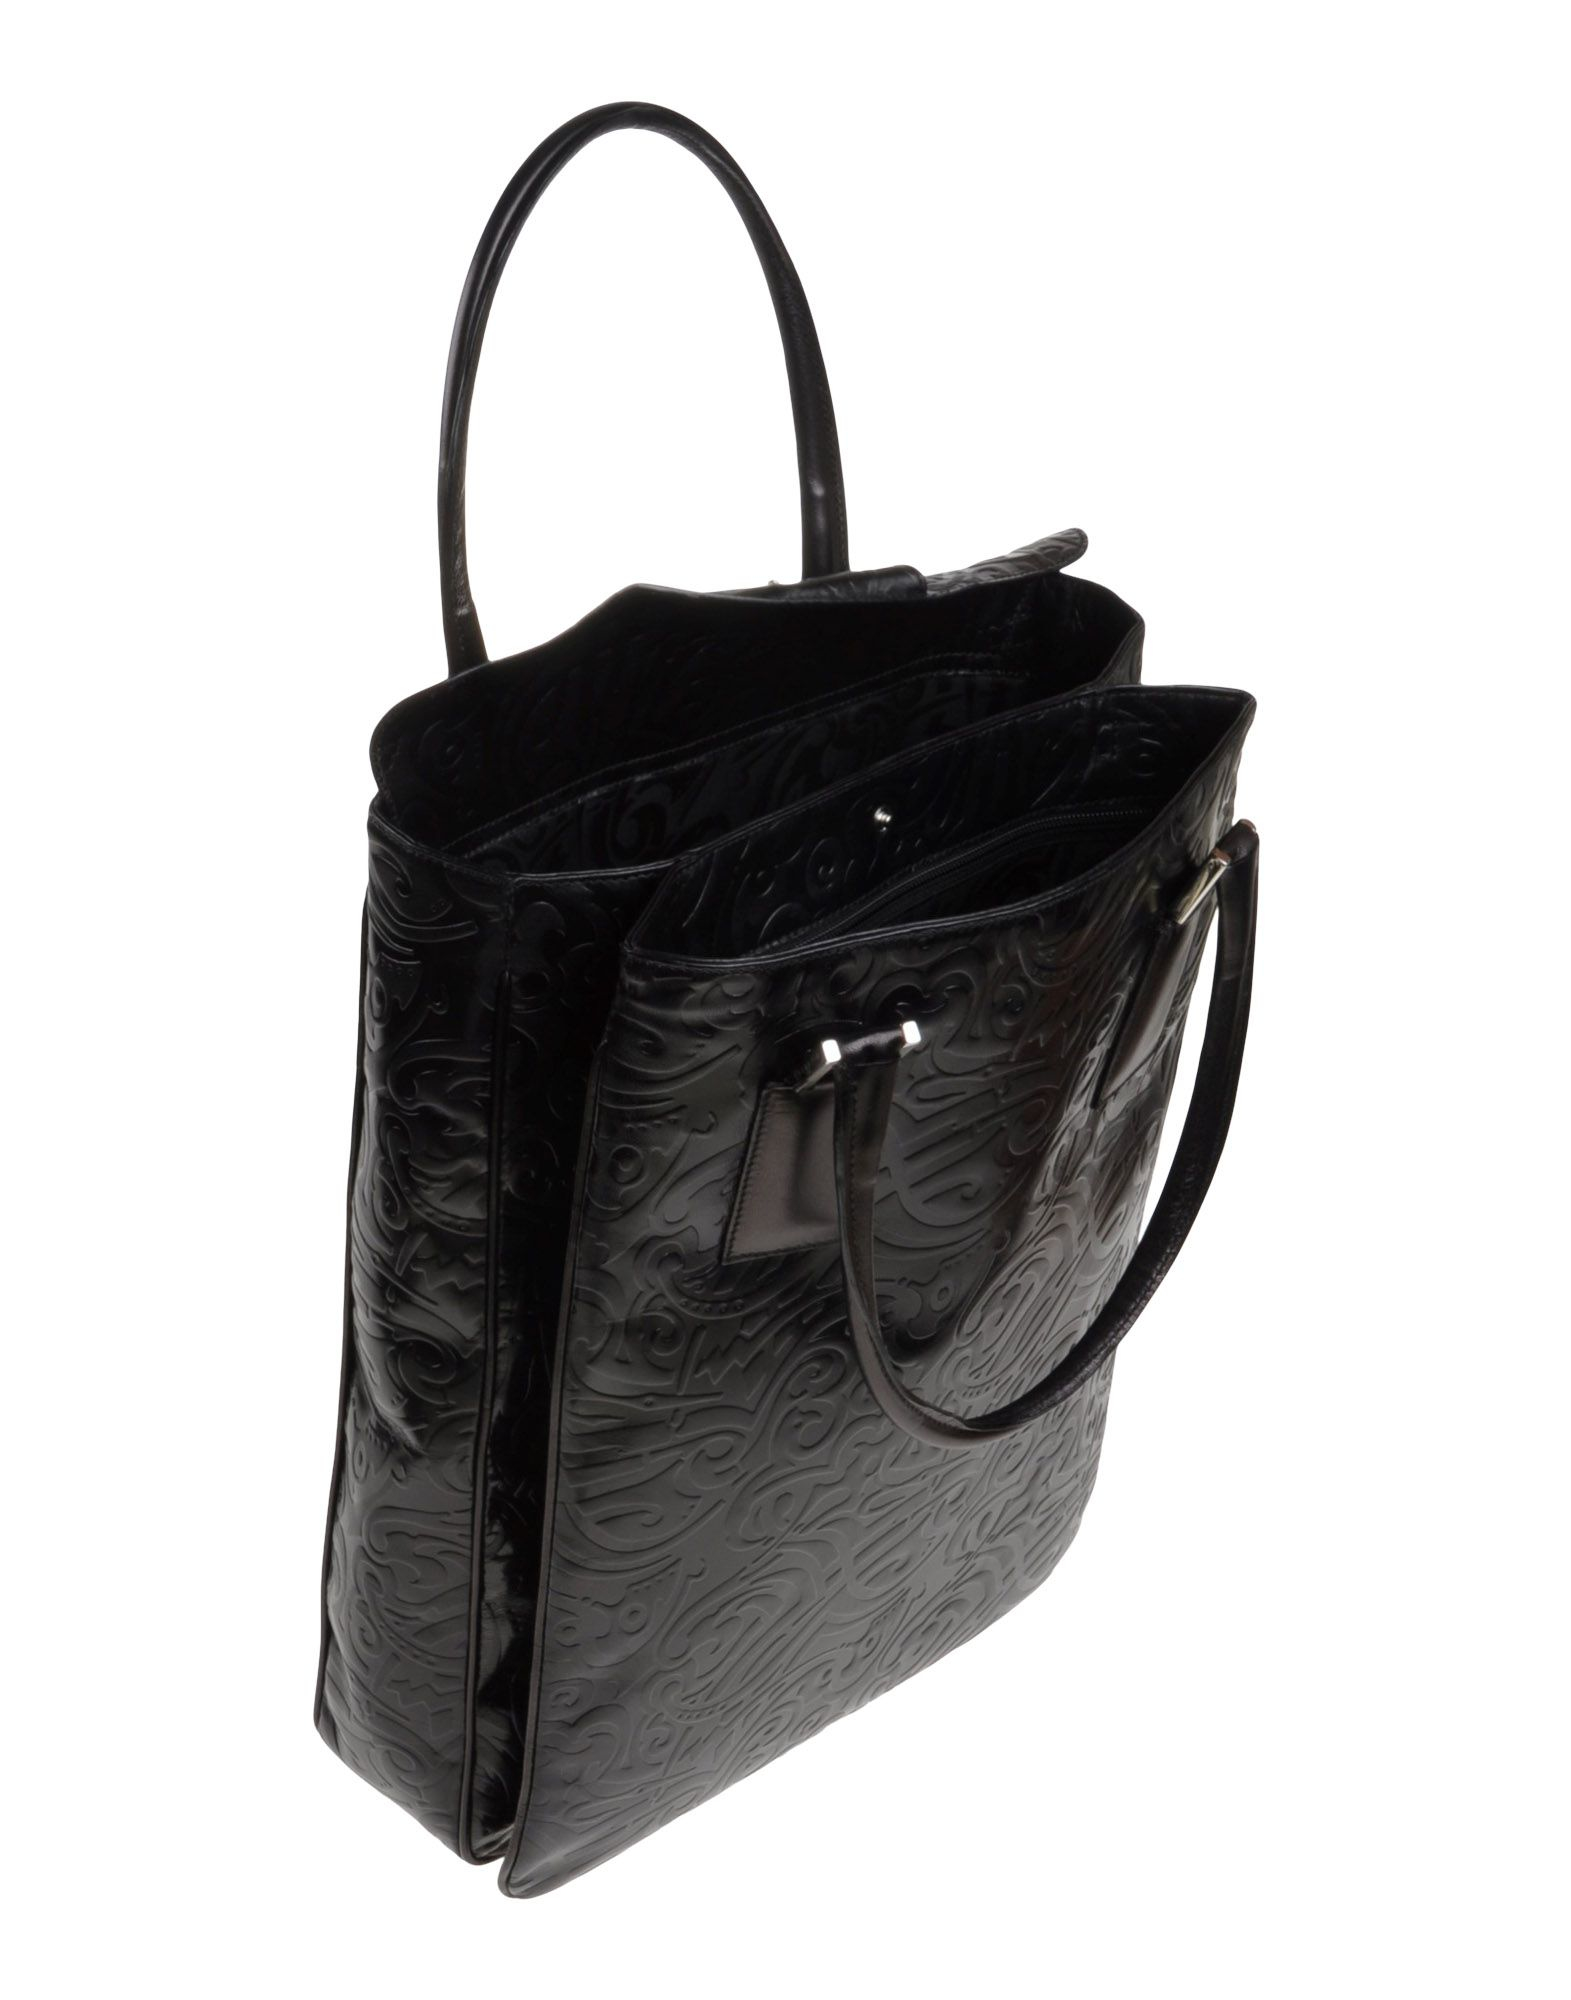 John richmond Handbag in Black for Men